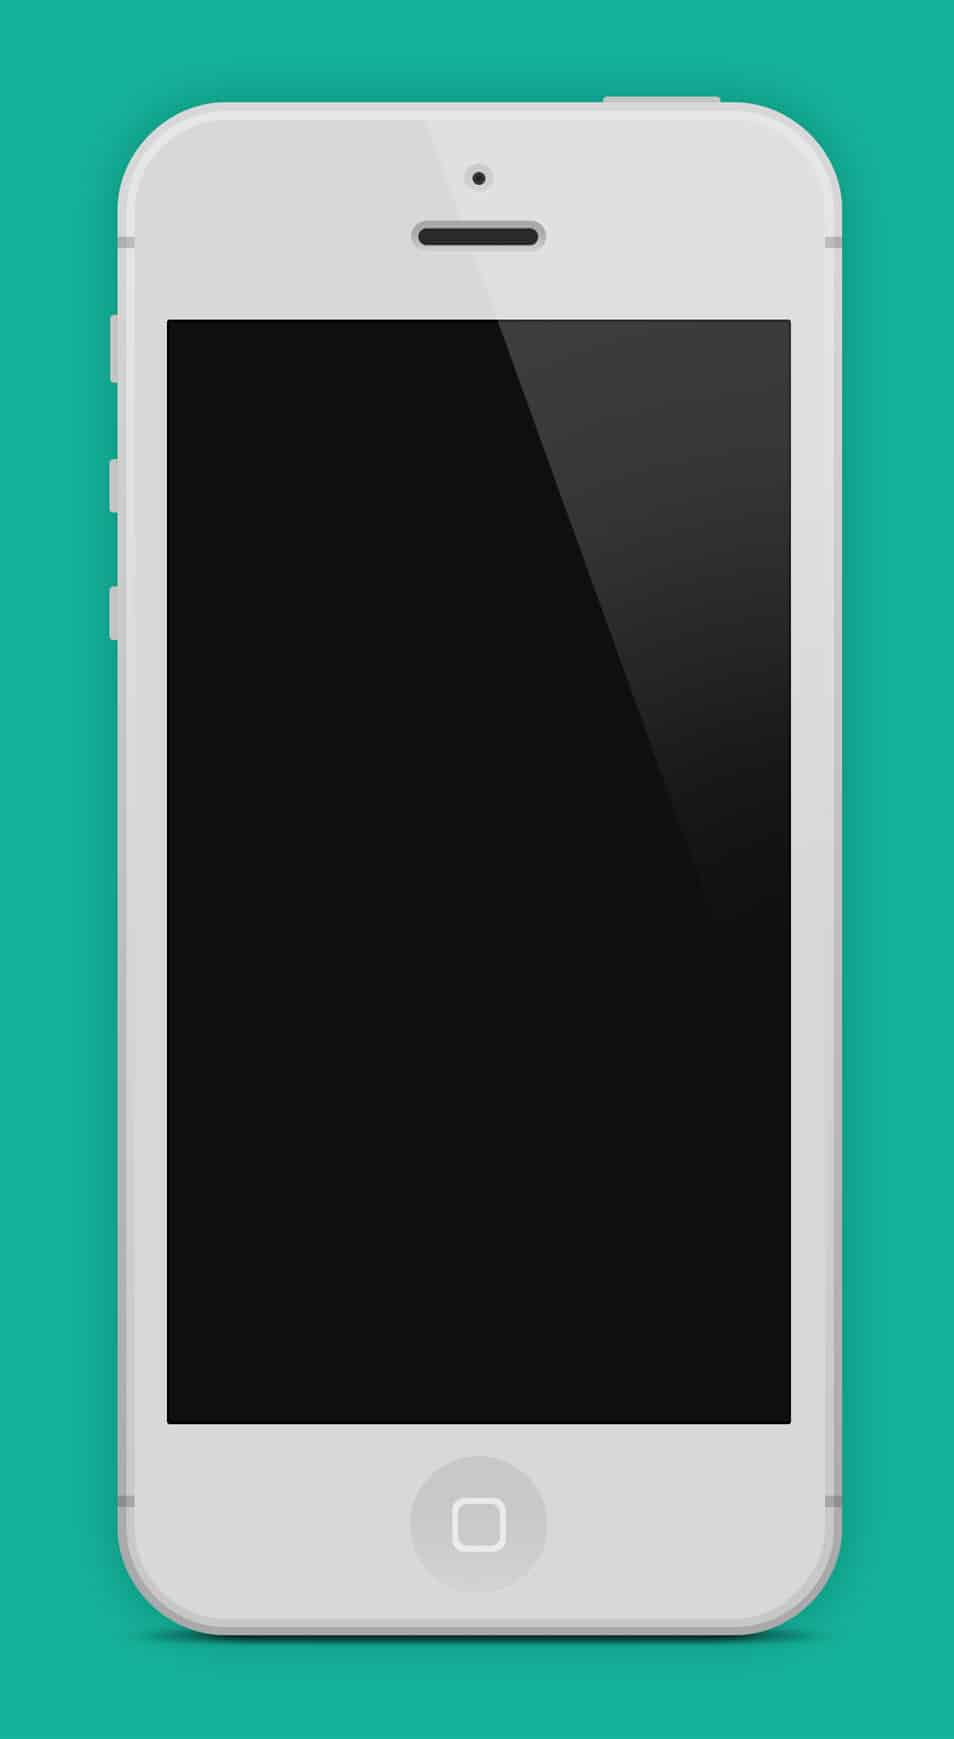 Flat iPhone 5 Black & White - PSD